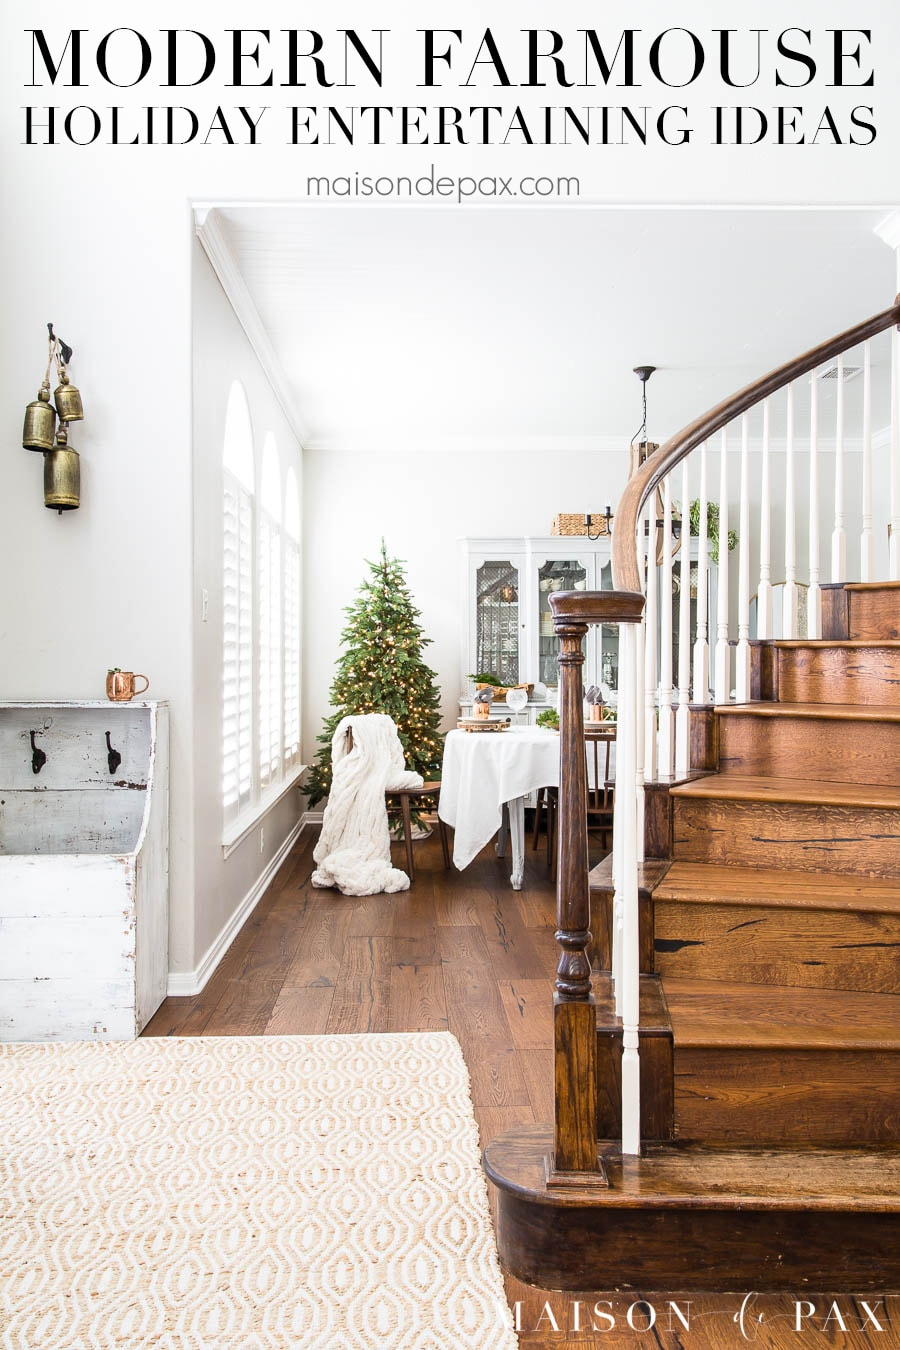 """view of wooden staircase and dining room beyond with Christmas tree and text overlay that reads """"modern farmhouse holiday entertaining ideas"""""""